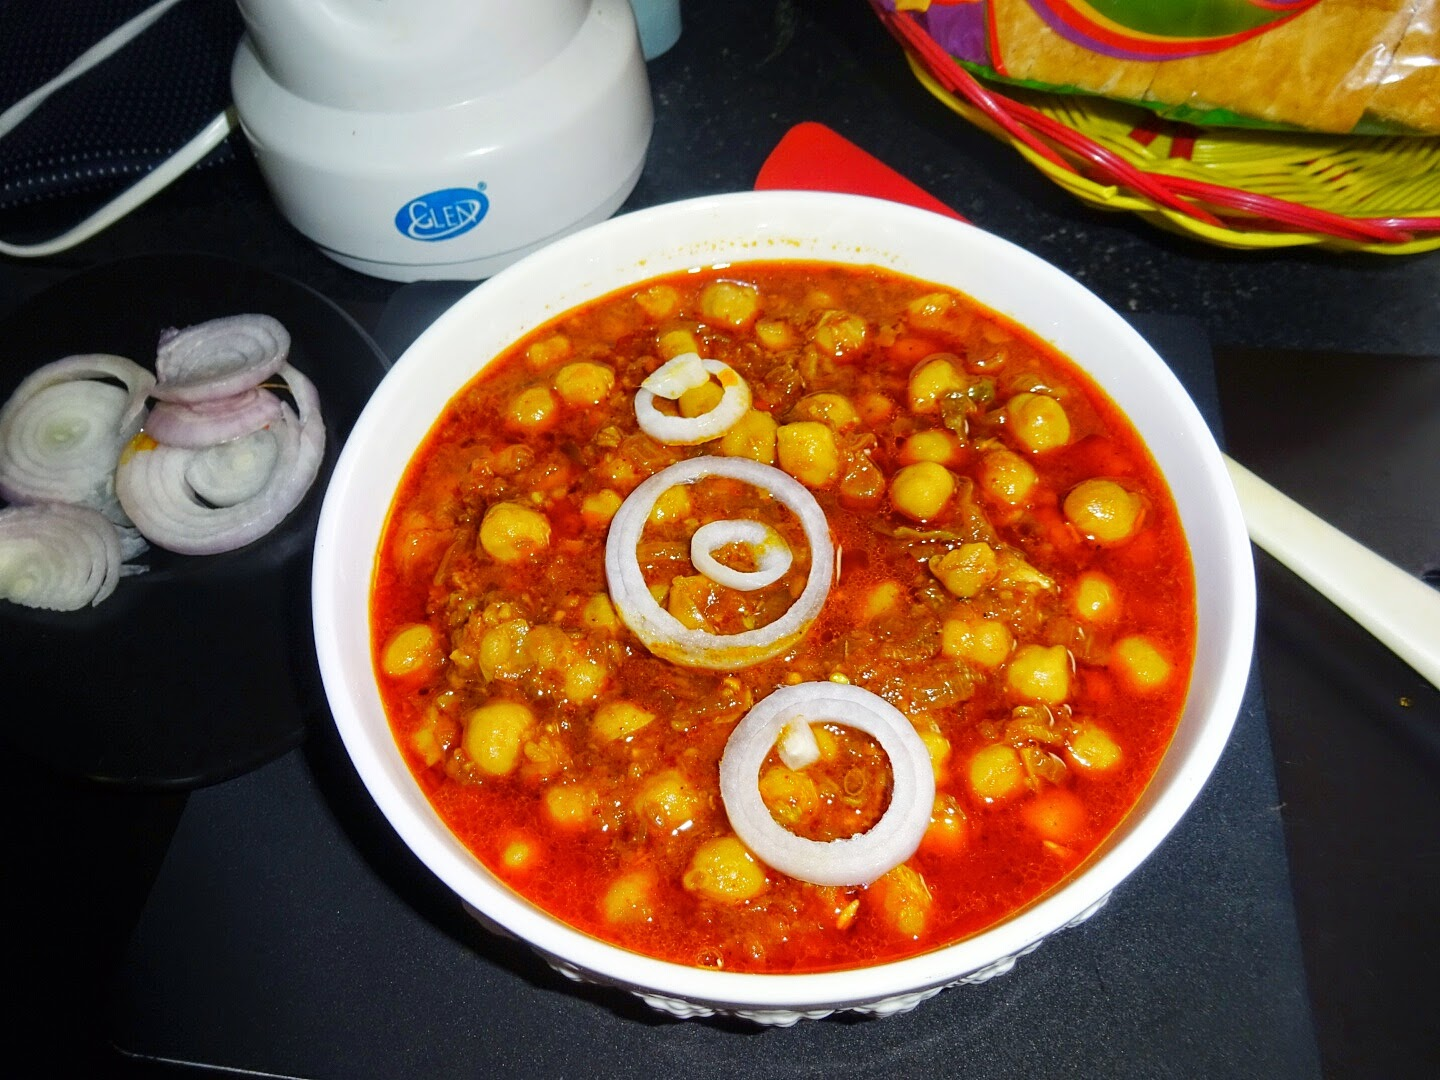 http://vegindiancooking121212.blogspot.in/2014/09/chole-masala-chickpeas-indian-curry.html